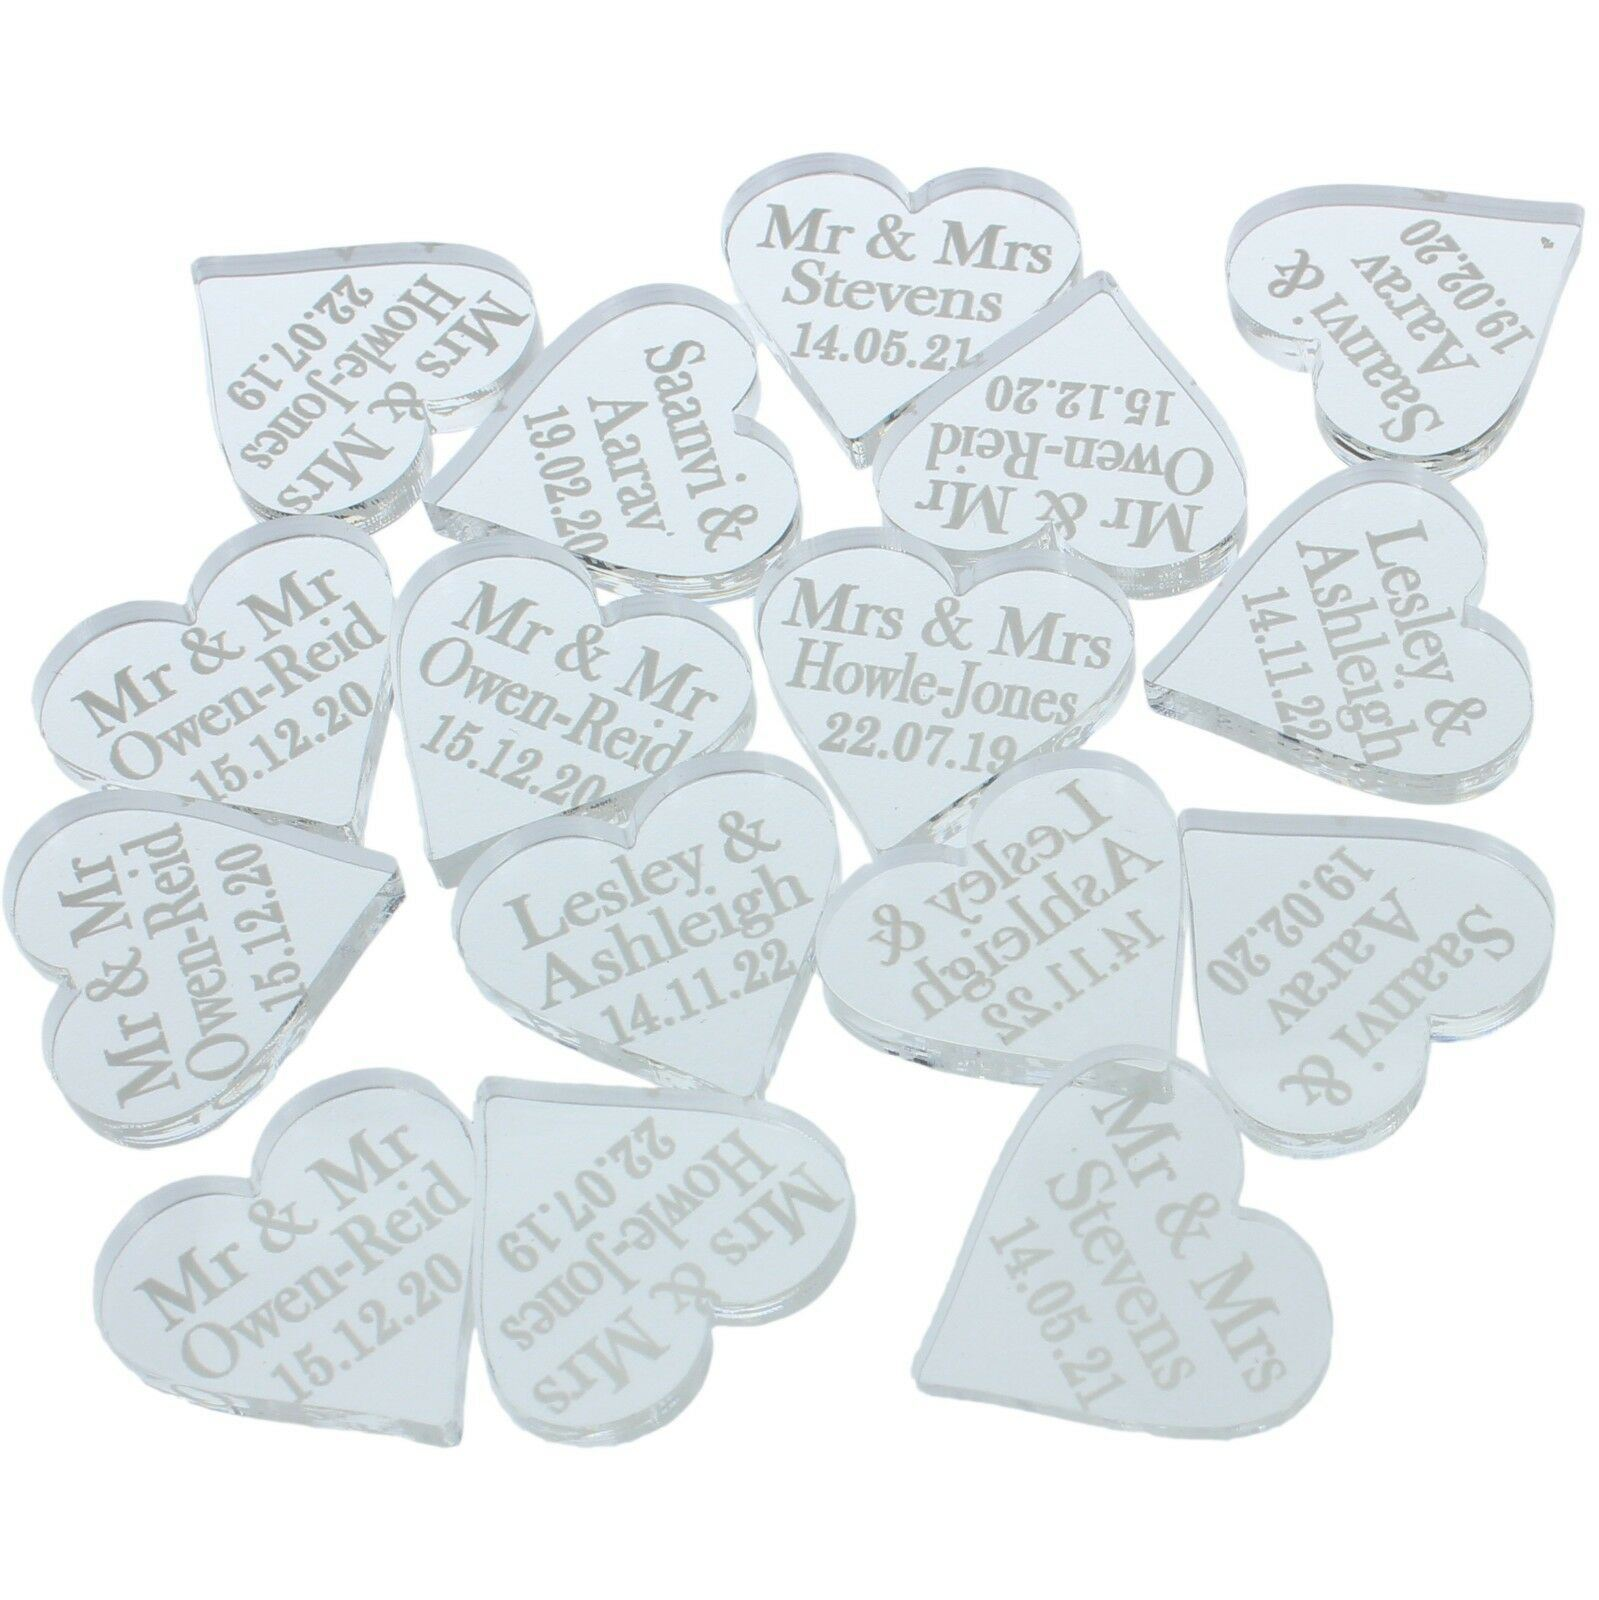 Personnalise-Mariage-Amour-Coeur-Mr-amp-Mrs-Decorations-de-table-mini-faveurs-Confettis miniature 7